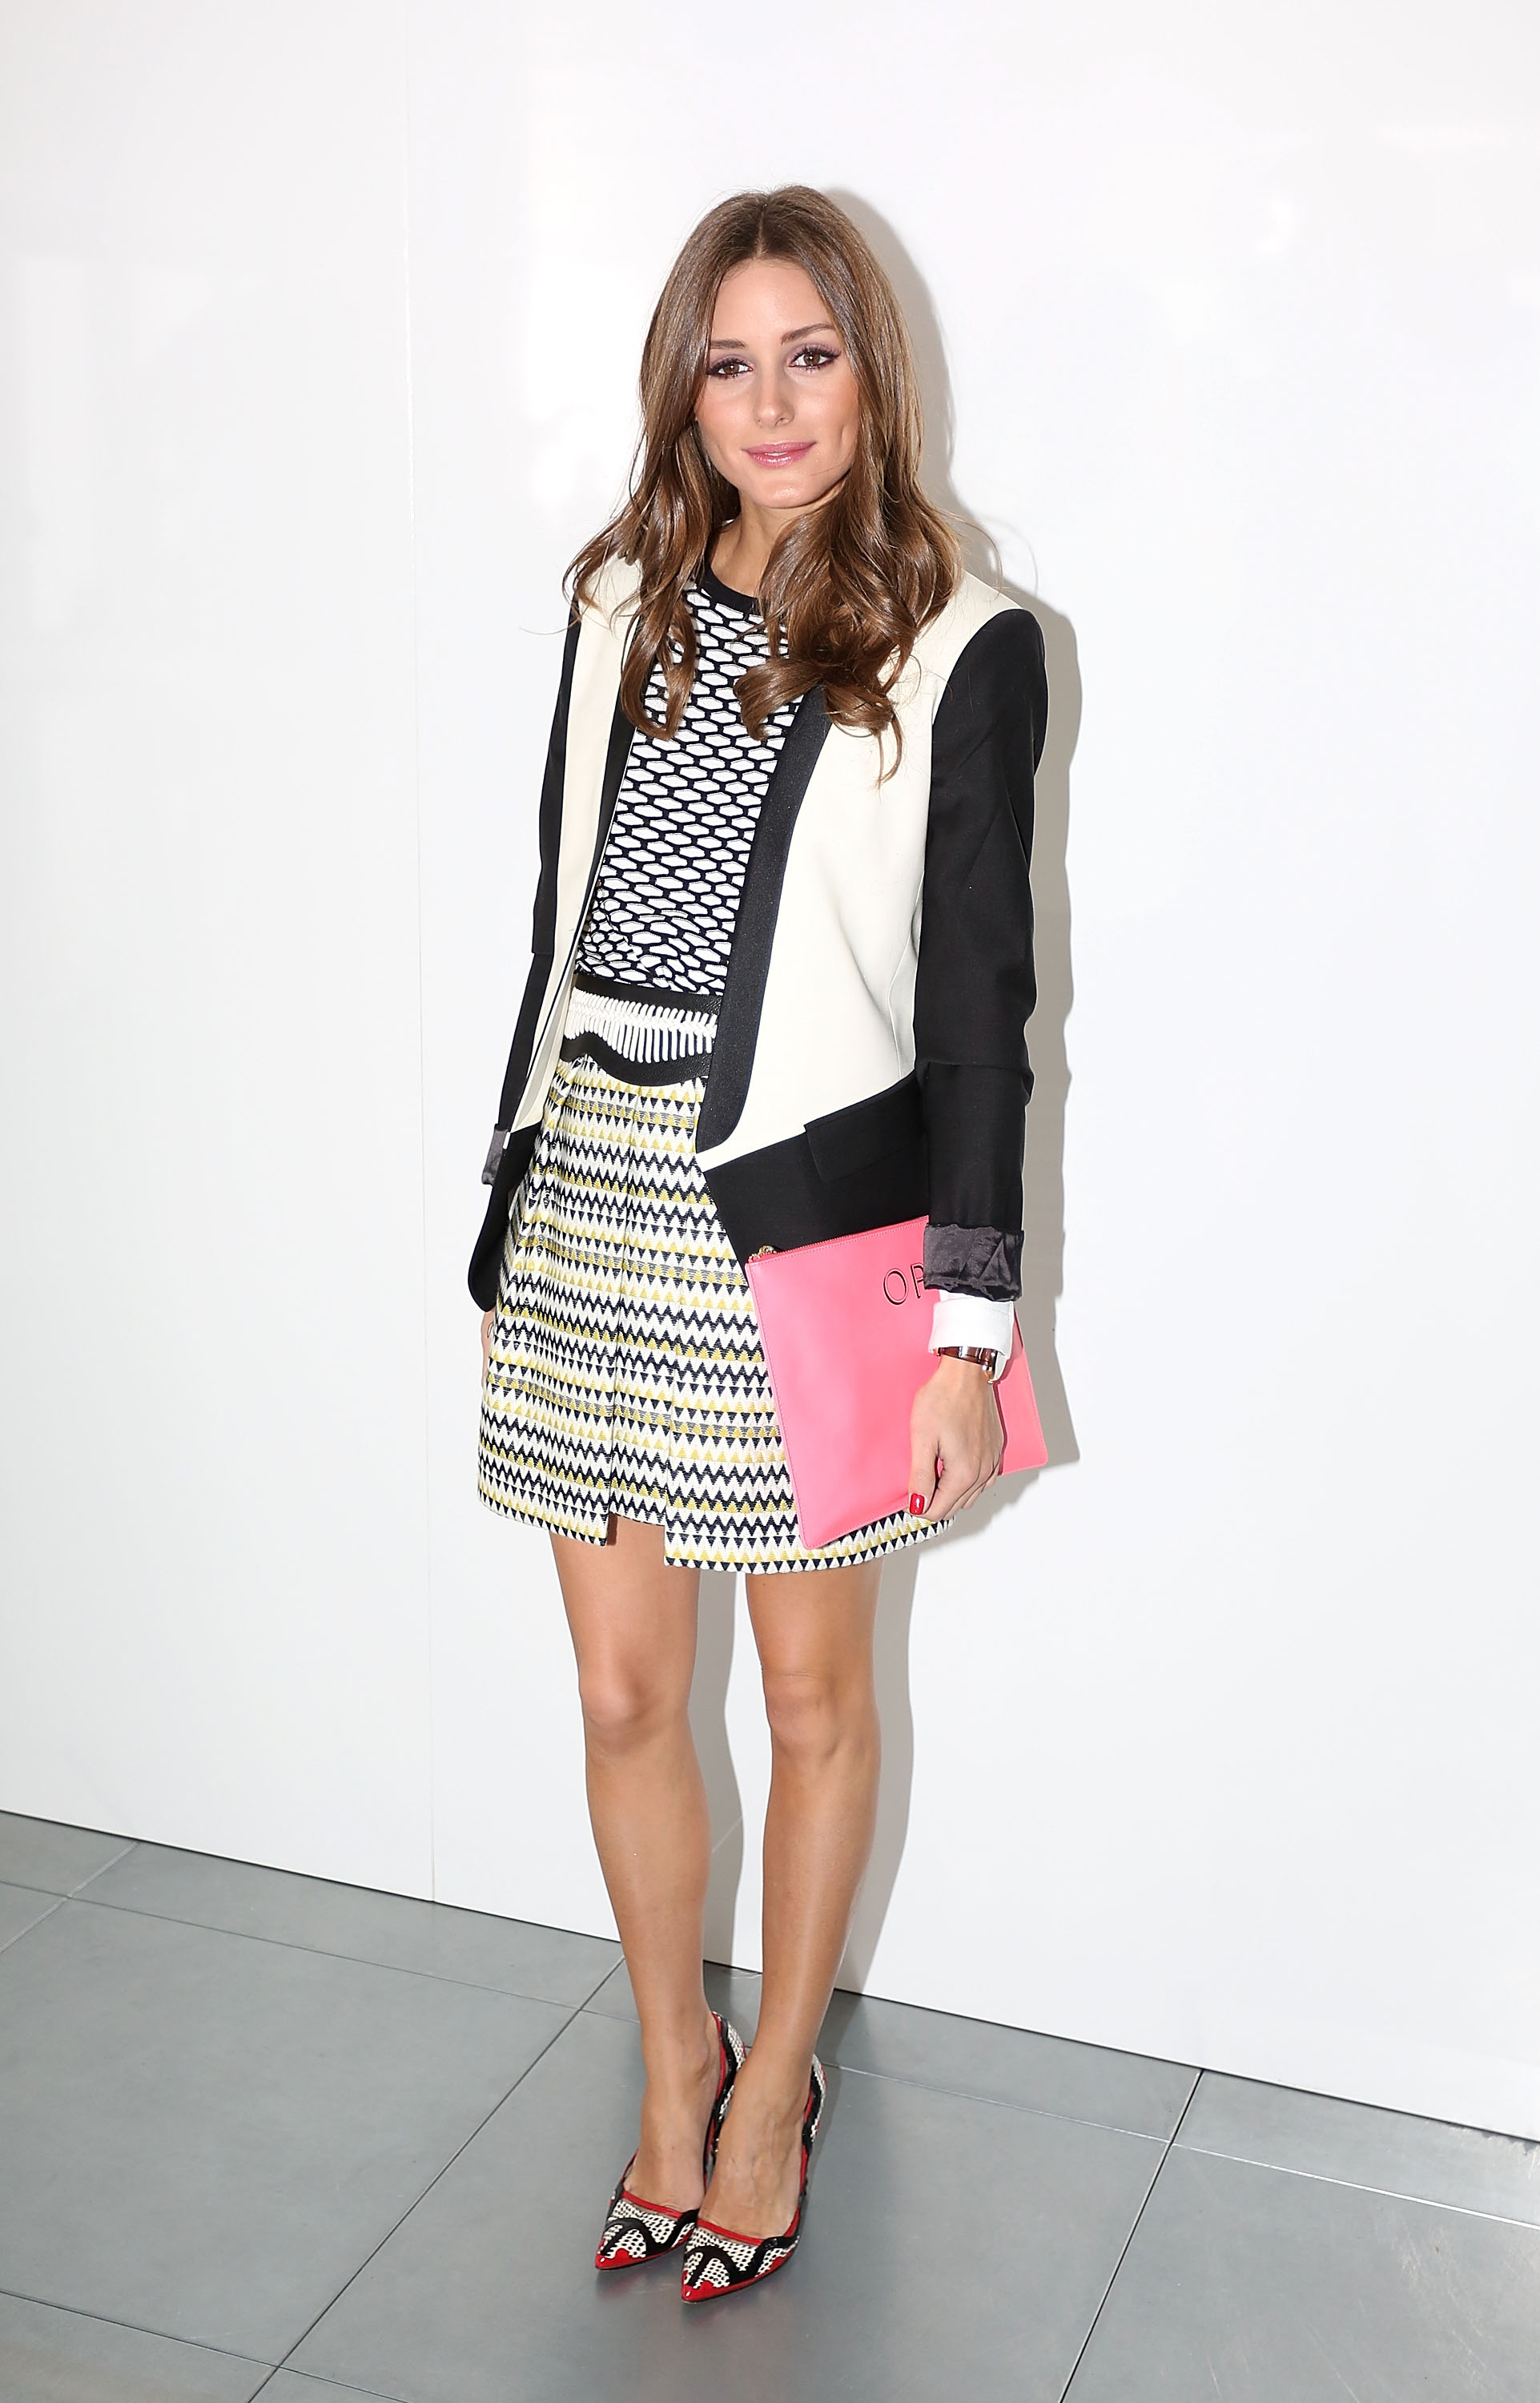 Olivia Palermo at the Preen by Thornton Bregazzi Fall 2013 show in London.